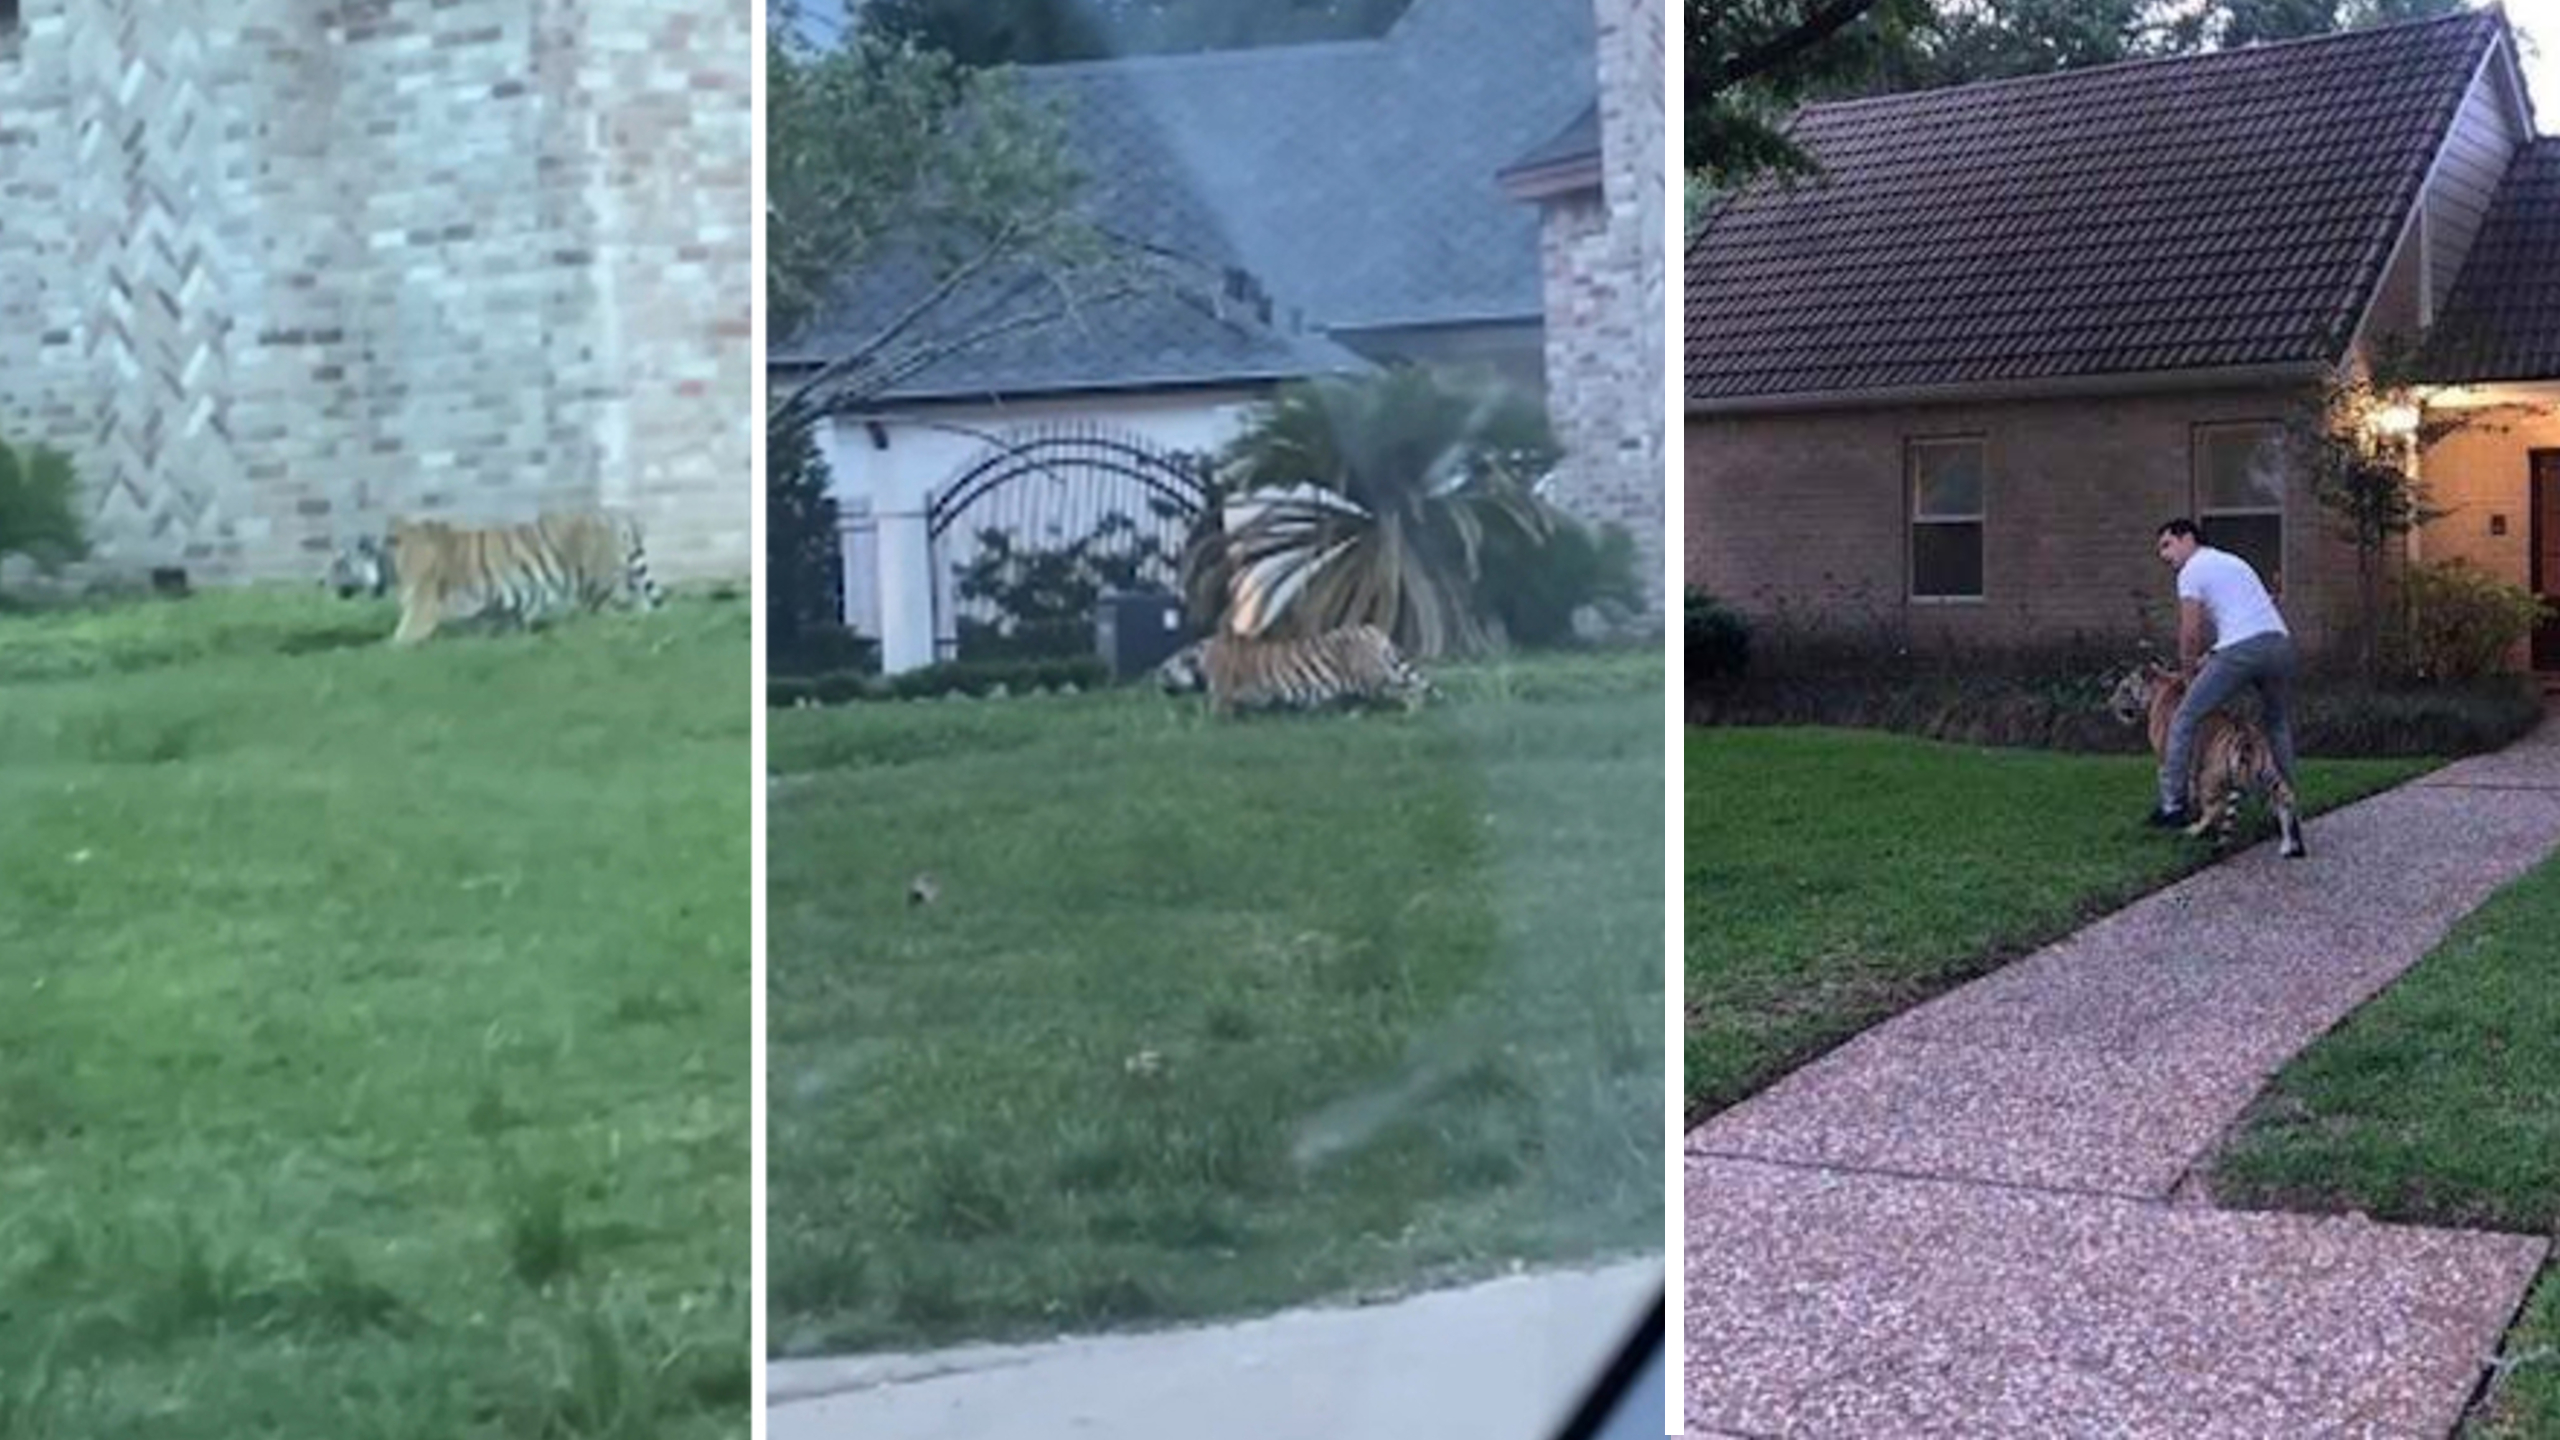 Tiger on the loose in texas